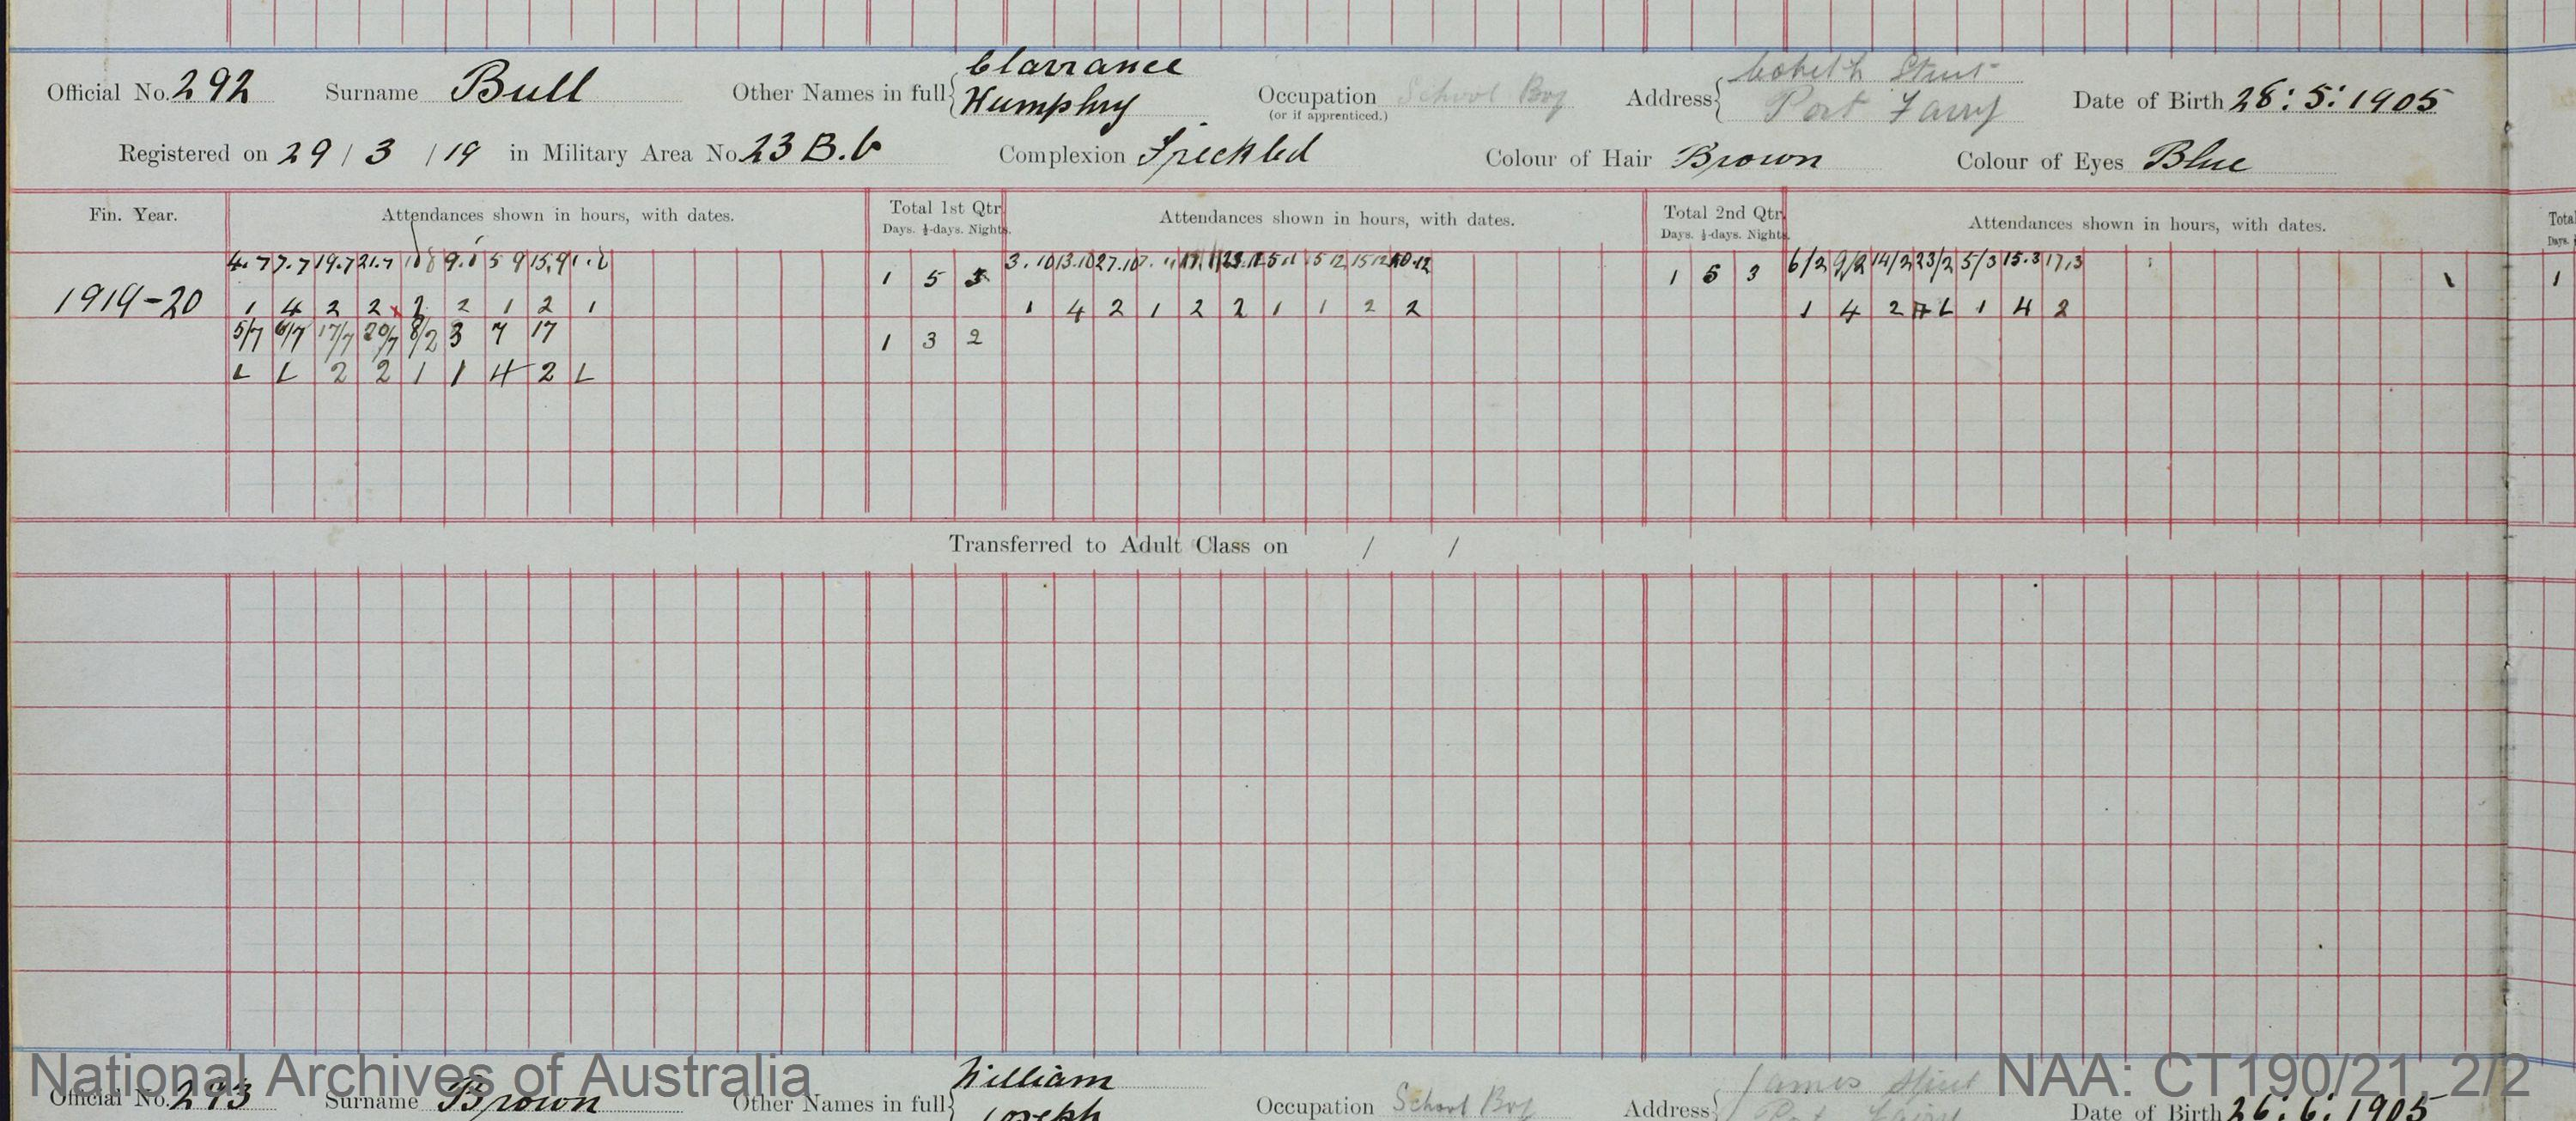 SURNAME - BULL;  GIVEN NAME(S) - Clarrance Humphry;  OFFICIAL NUMBER - 292;  DATE OF BIRTH - 28 May 1905;  PLACE OF BIRTH - [Unknown];  NEXT OF KIN - [Unknown] ;  SERVICE/STATION - Port Fairy;  REGISTRATION DATE - 29 March 1919